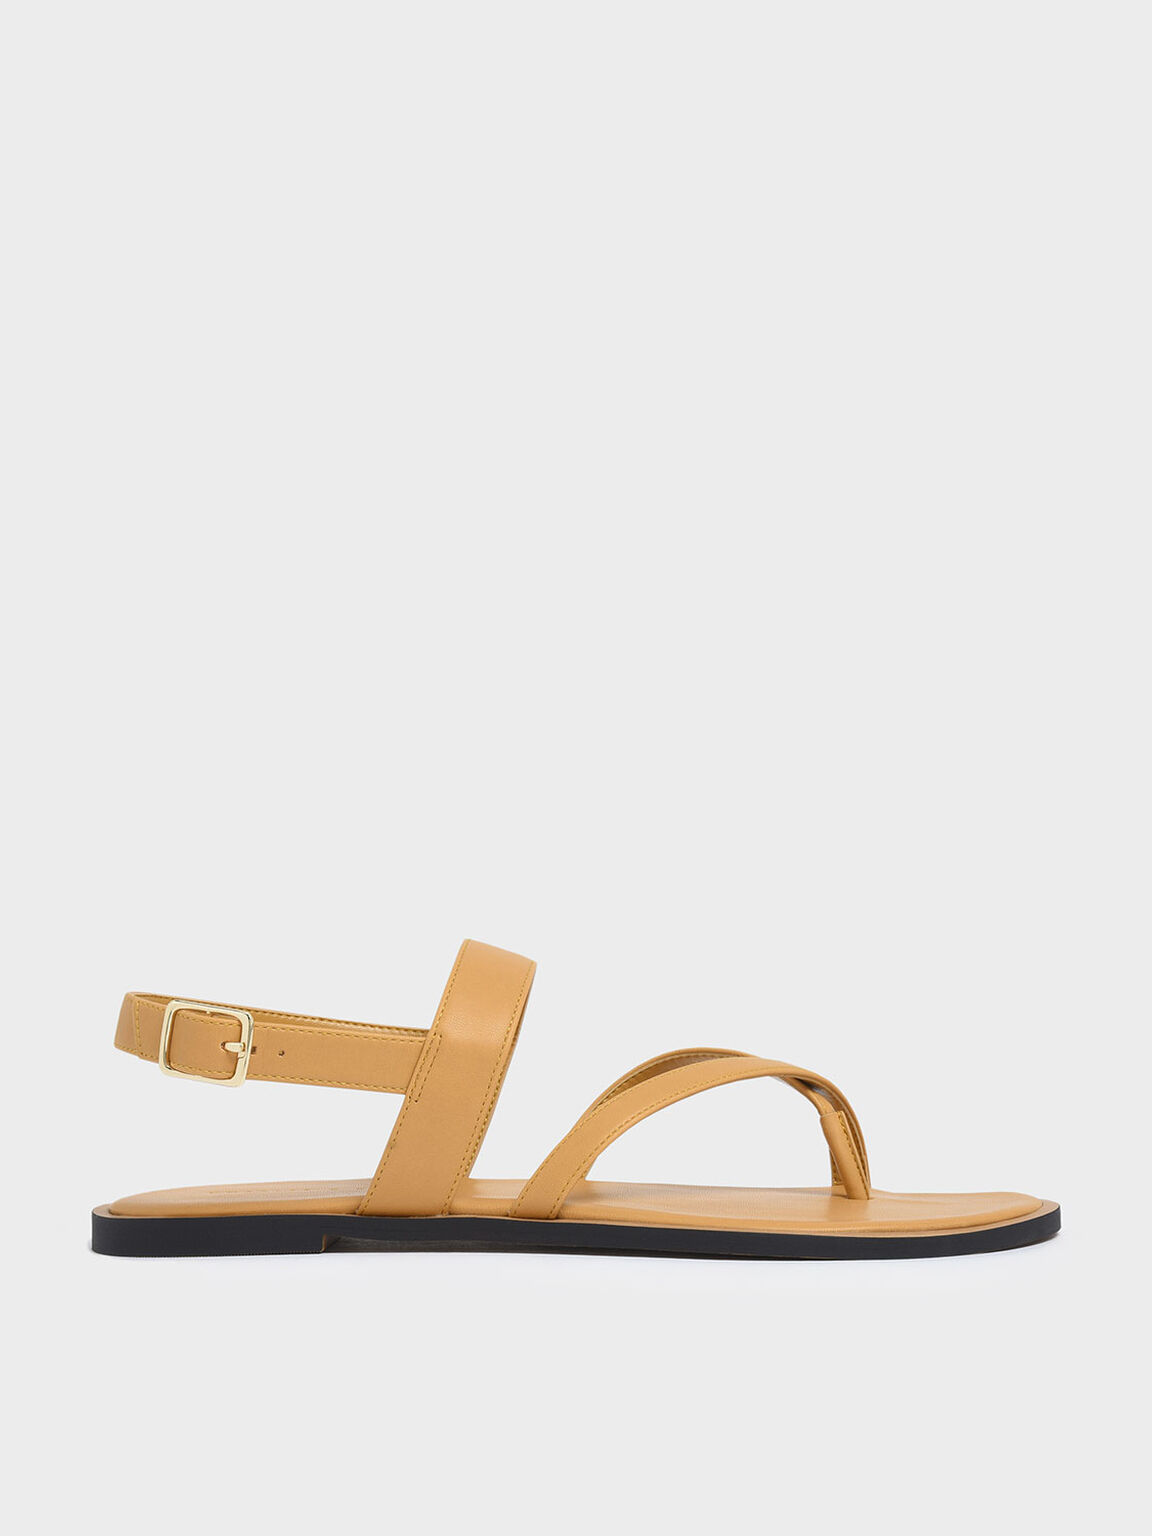 Toe Strap Thong Sandals, Mustard, hi-res